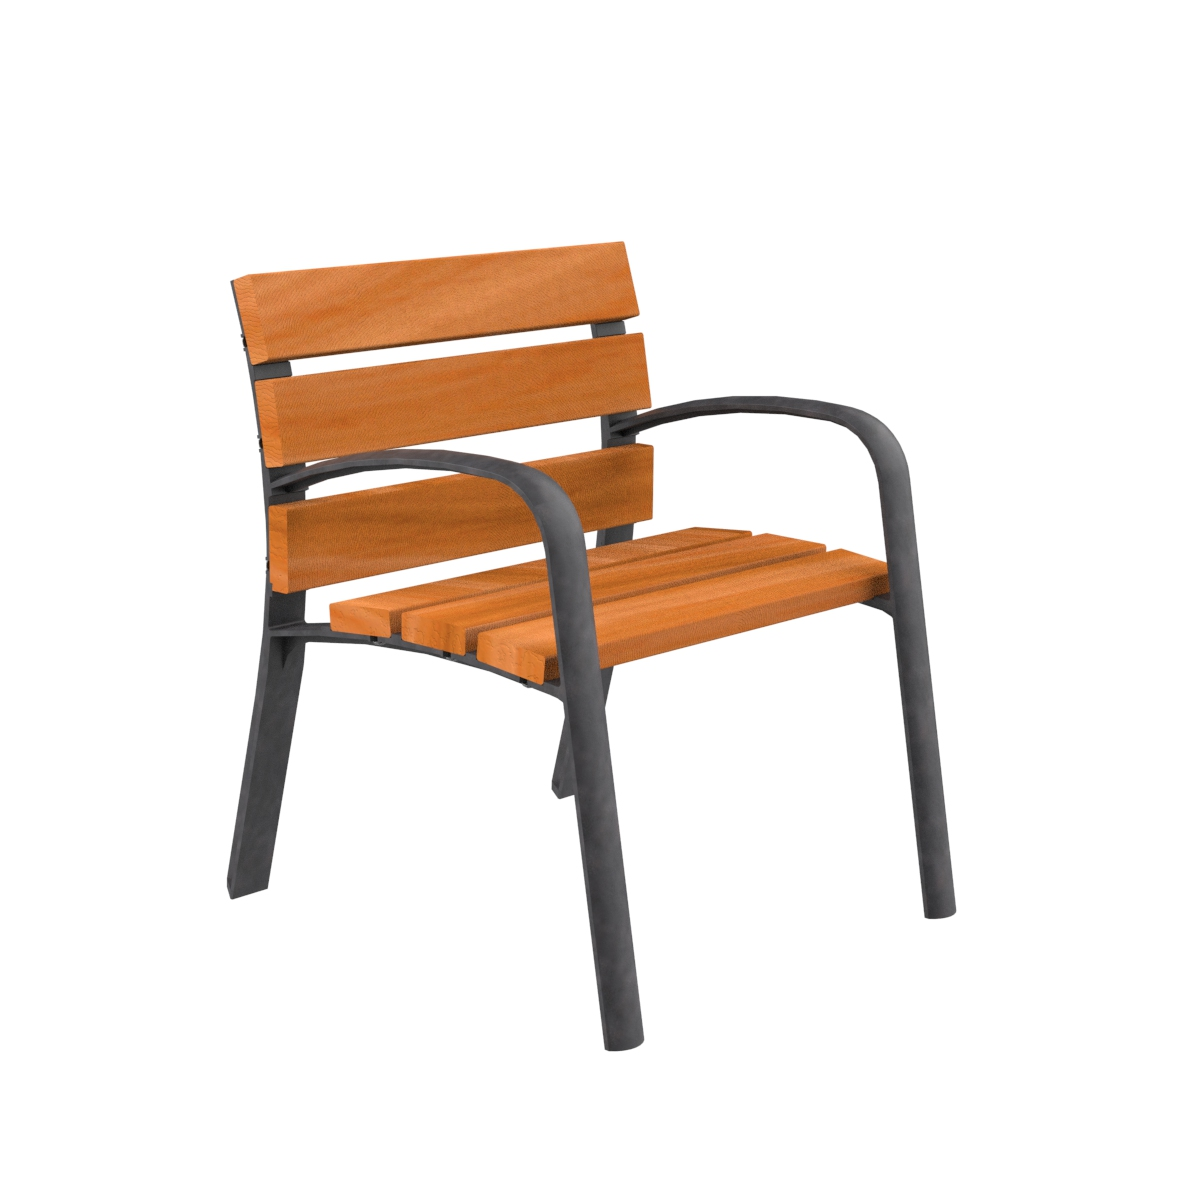 Modo Wood Chair urban furniture to sit down in parks and gardens